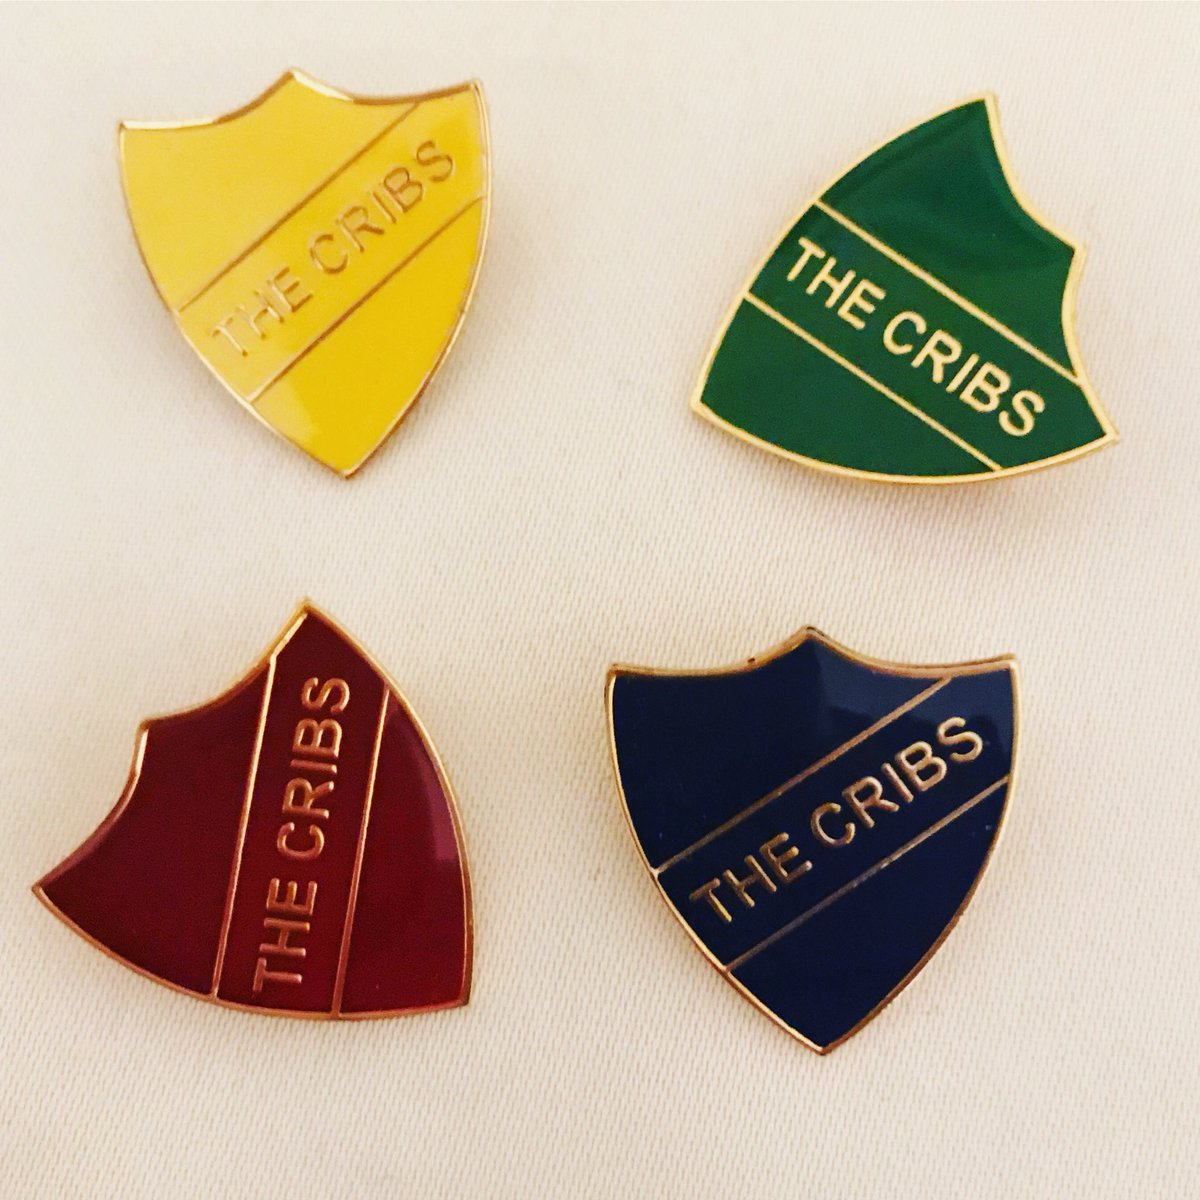 The Cribs A Twitter Tbt Who Had One Of These On Their Jacket Bag